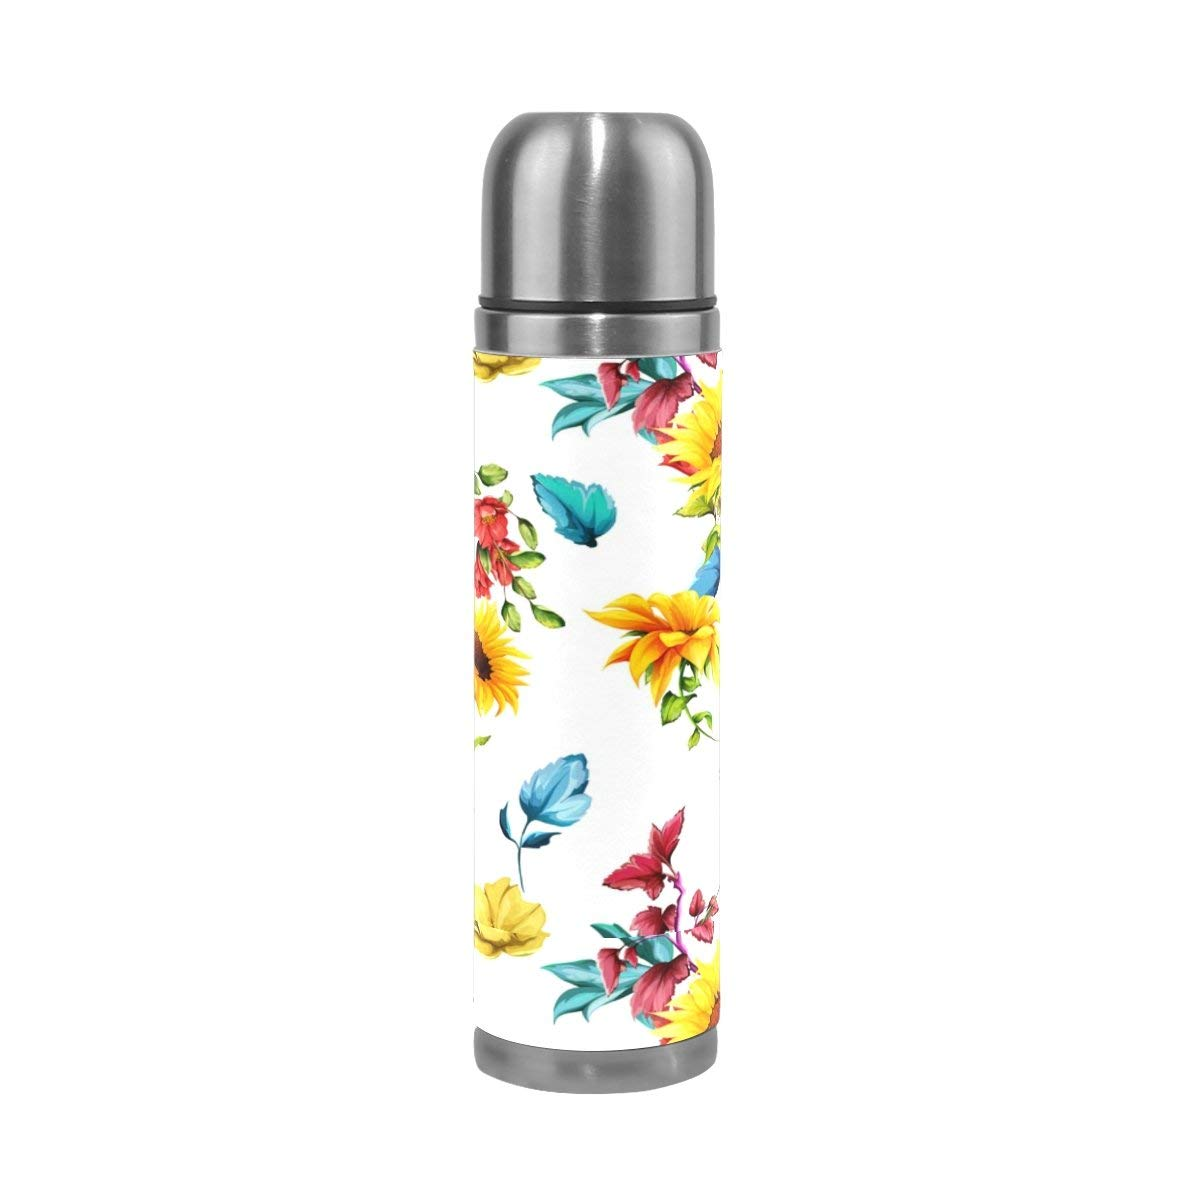 ALAZA Colorful Sunflowers Stainless Steel Water Bottle Vacuum Insulated Thermos Double Wall Flask Genuine Leather Cover 17 OZ